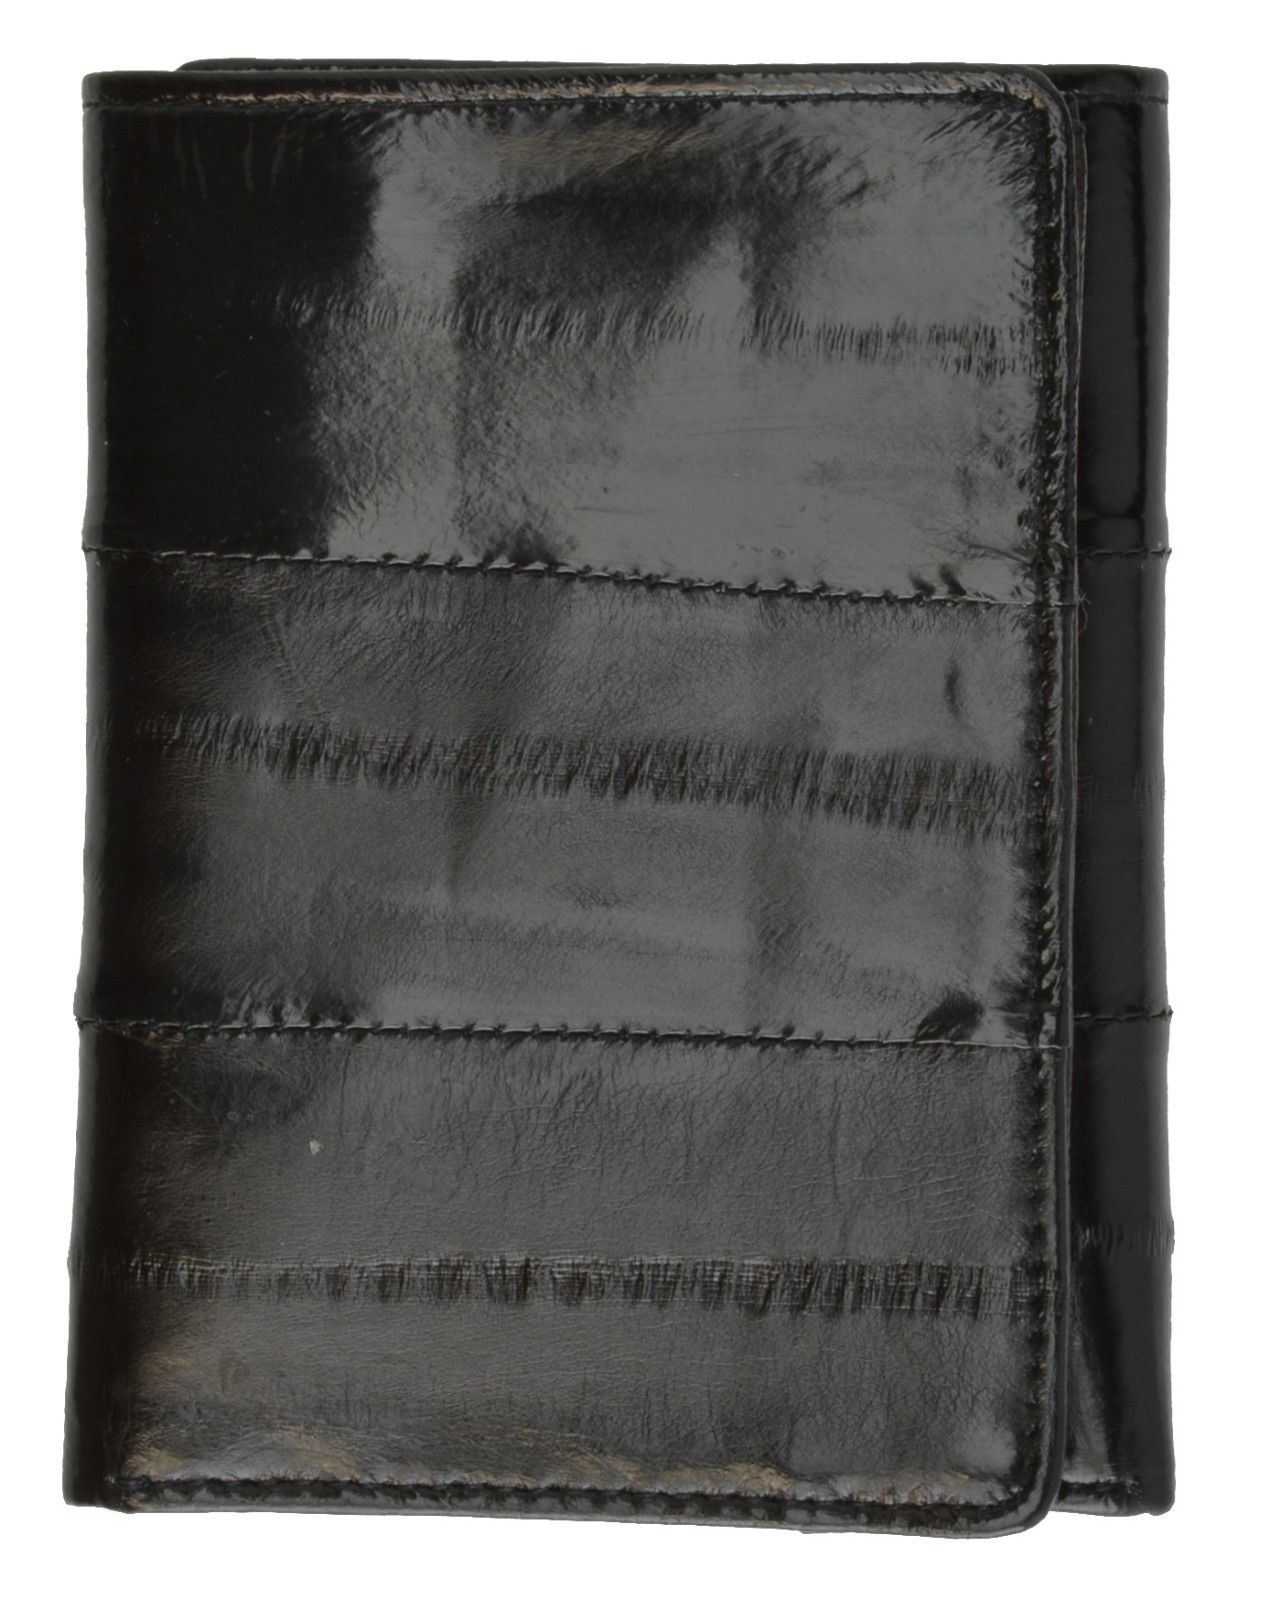 New Genuine EEL SKIN Men/'s Light weight WALLET with ID window sm//Small Trifold